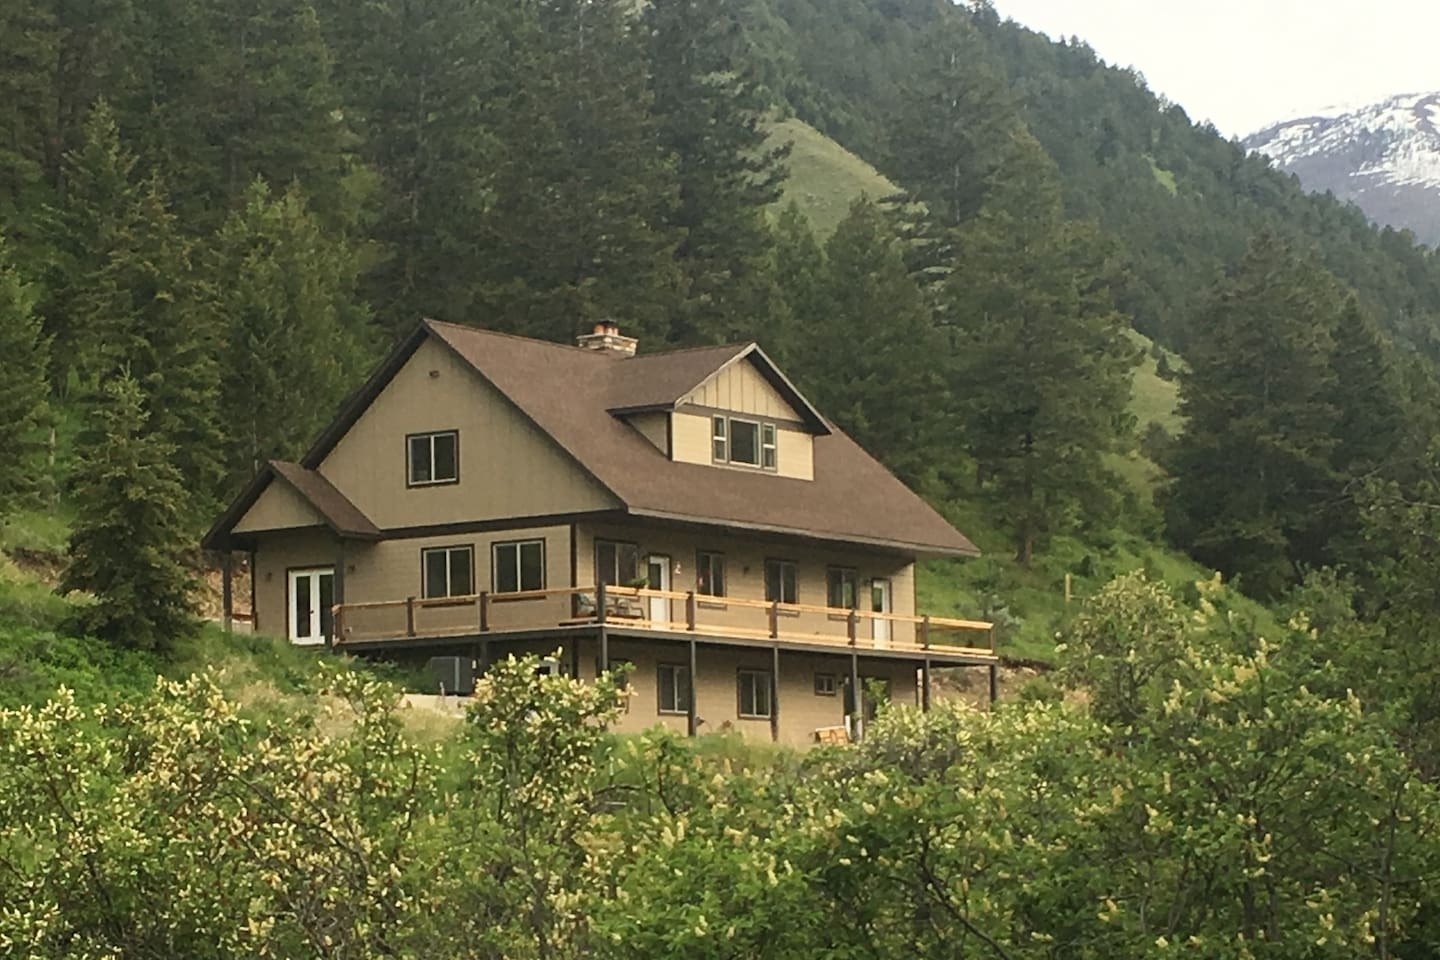 Skyrange Acres is located in one of the most beautiful parts of historic Lemhi County, Idaho.